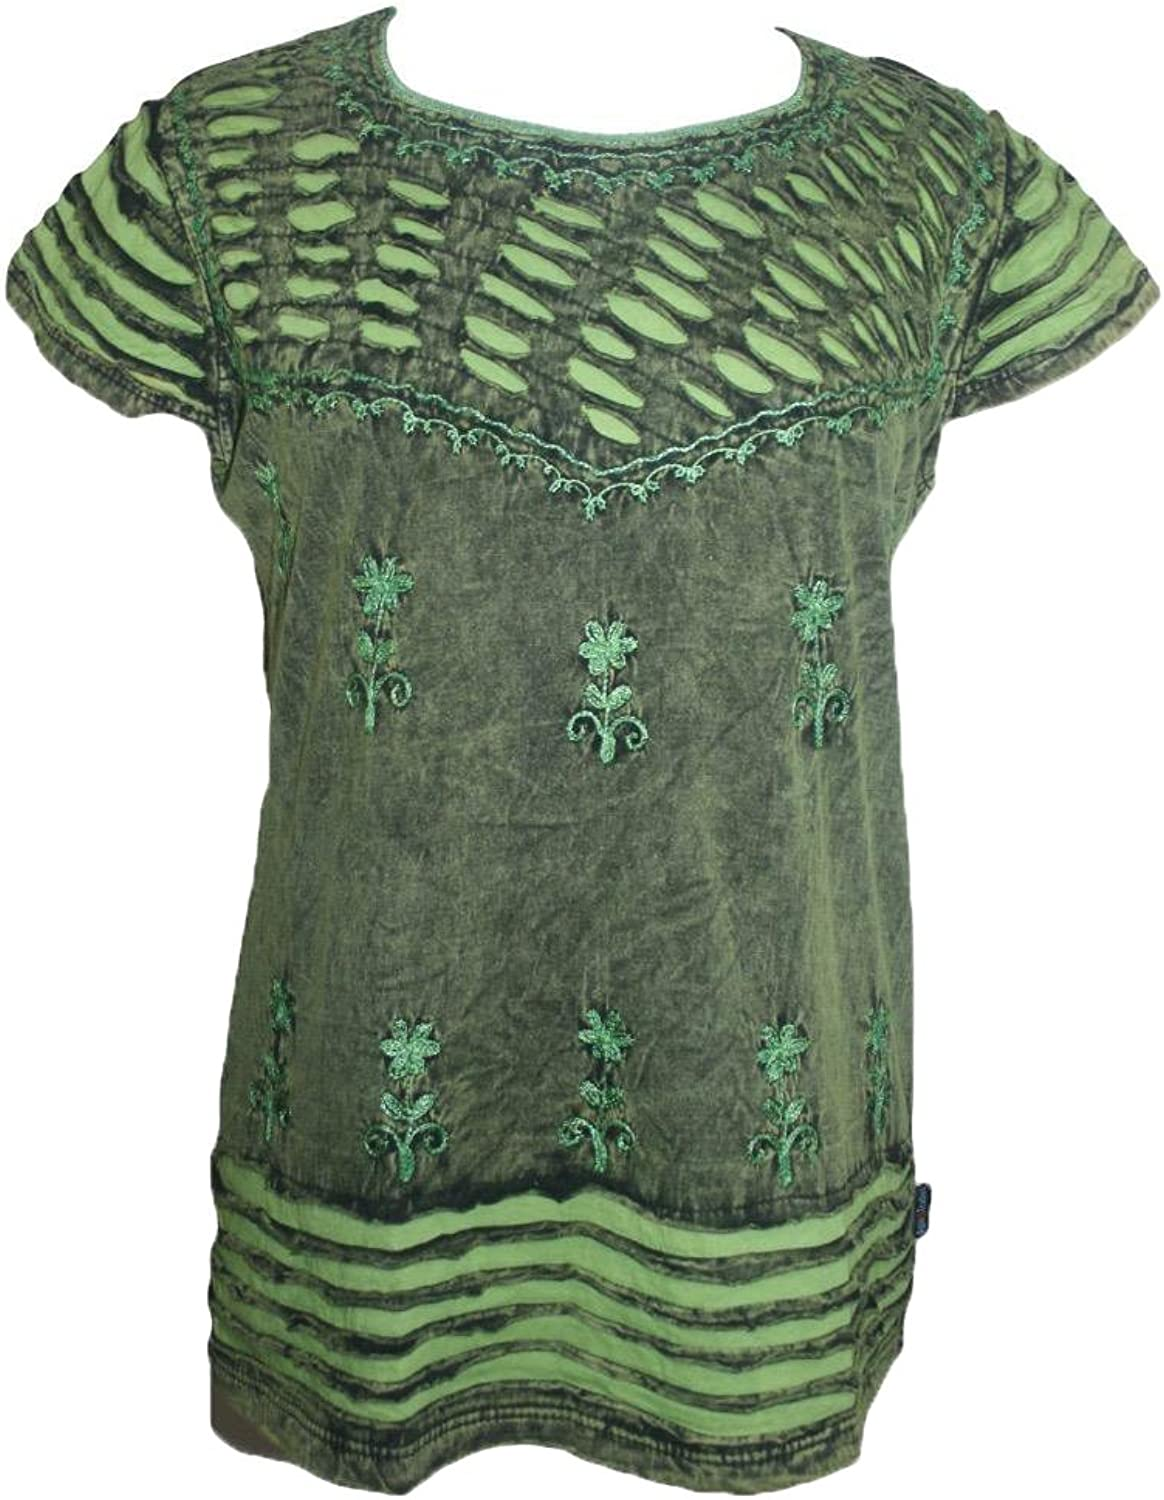 Agan Traders R 132 Women's Bohemian Gypsy Razor Cut Cap Sleeve Blouse Top